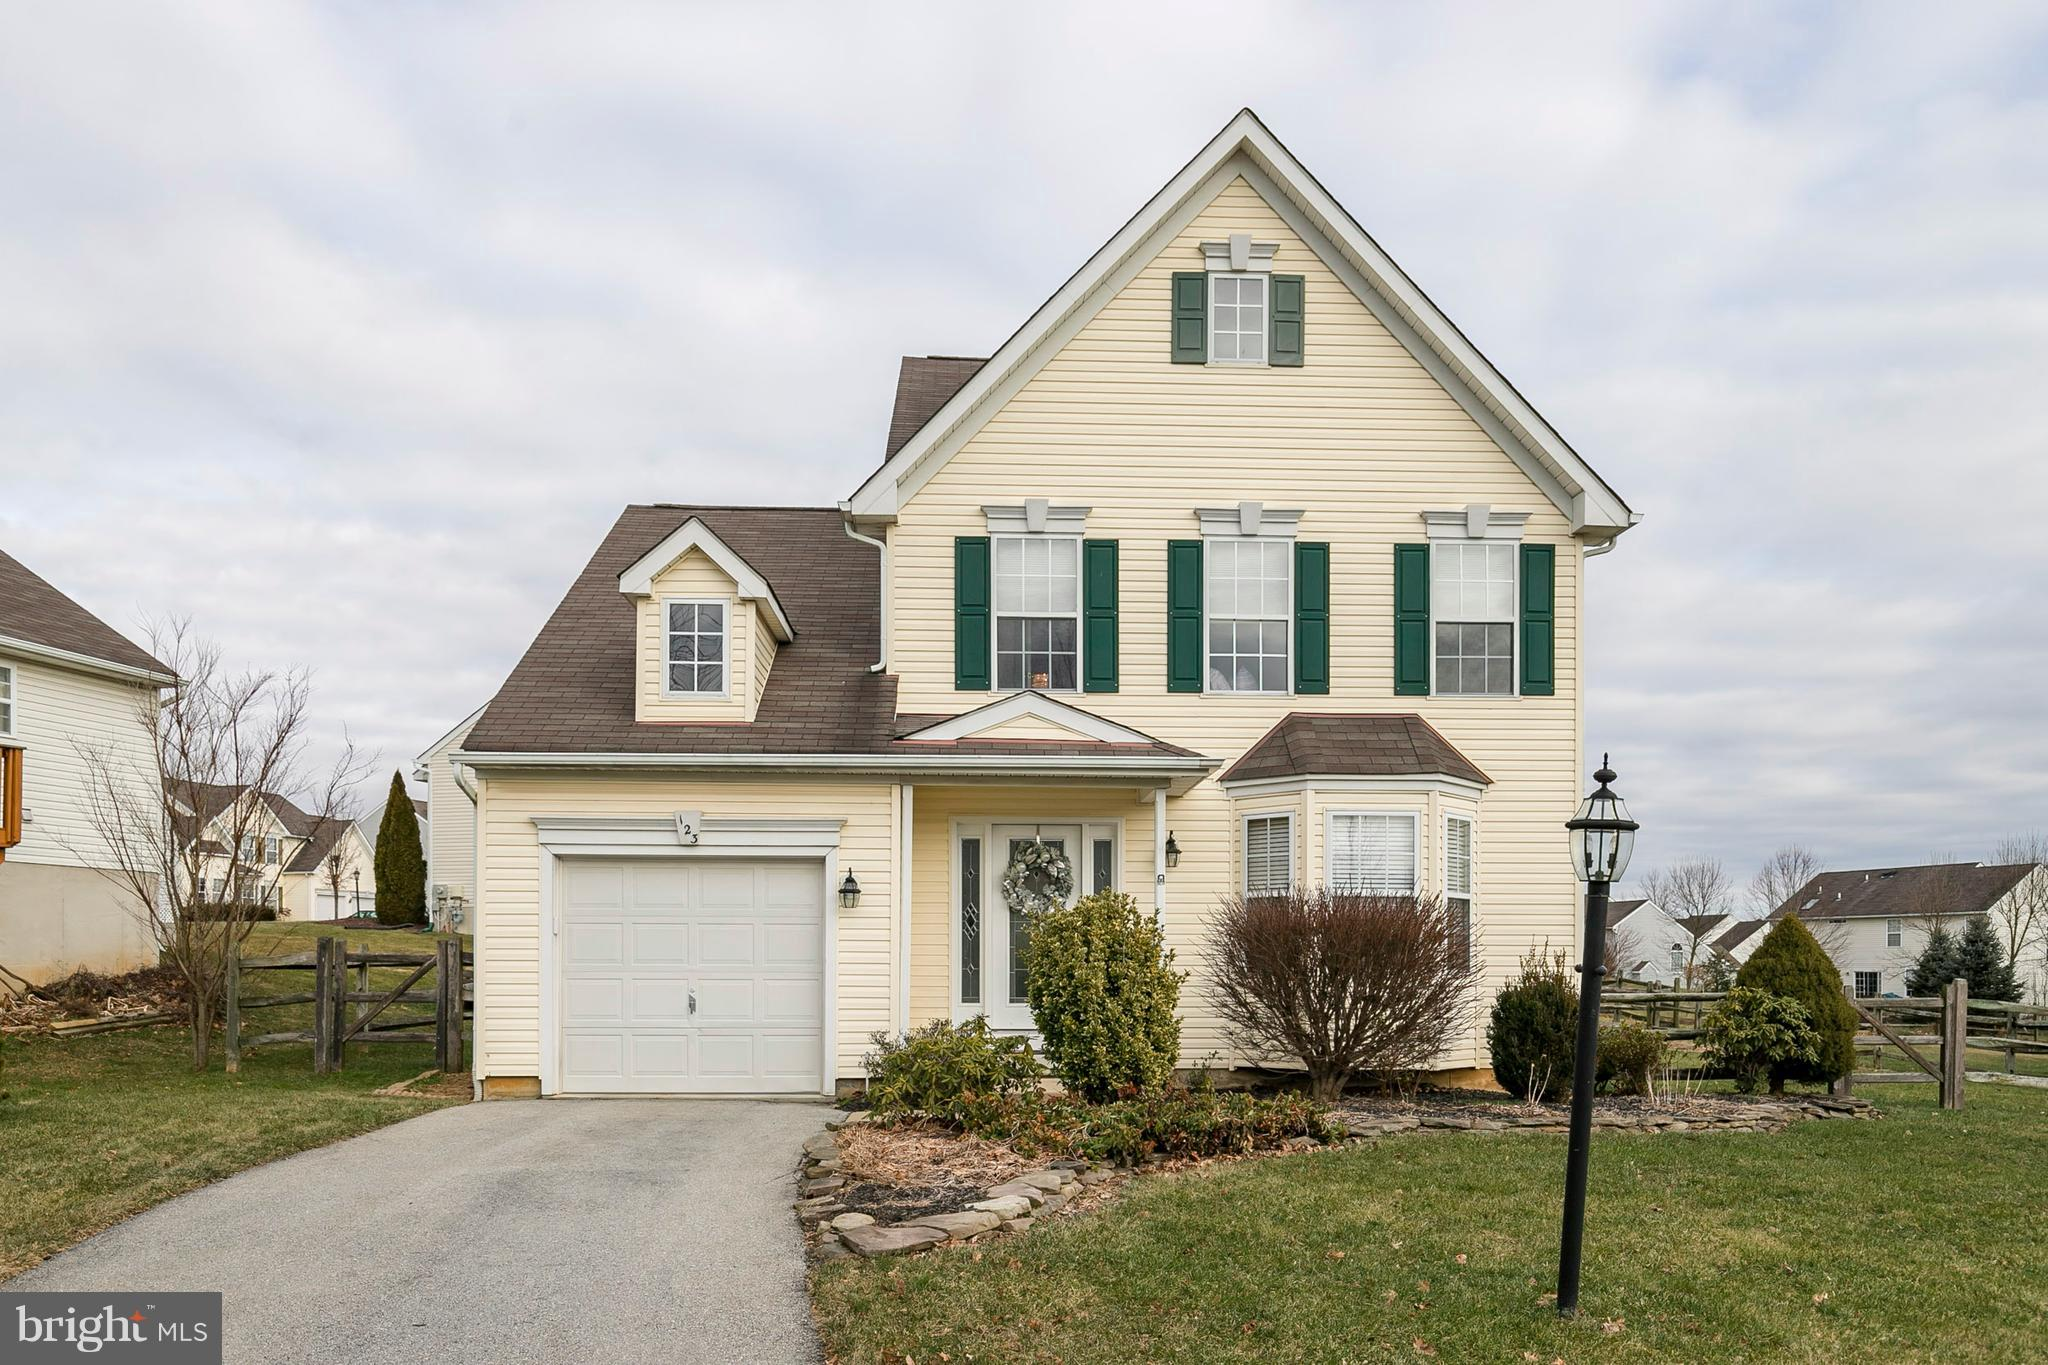 123 GARDEN VIEW DRIVE, THORNDALE, PA 19372